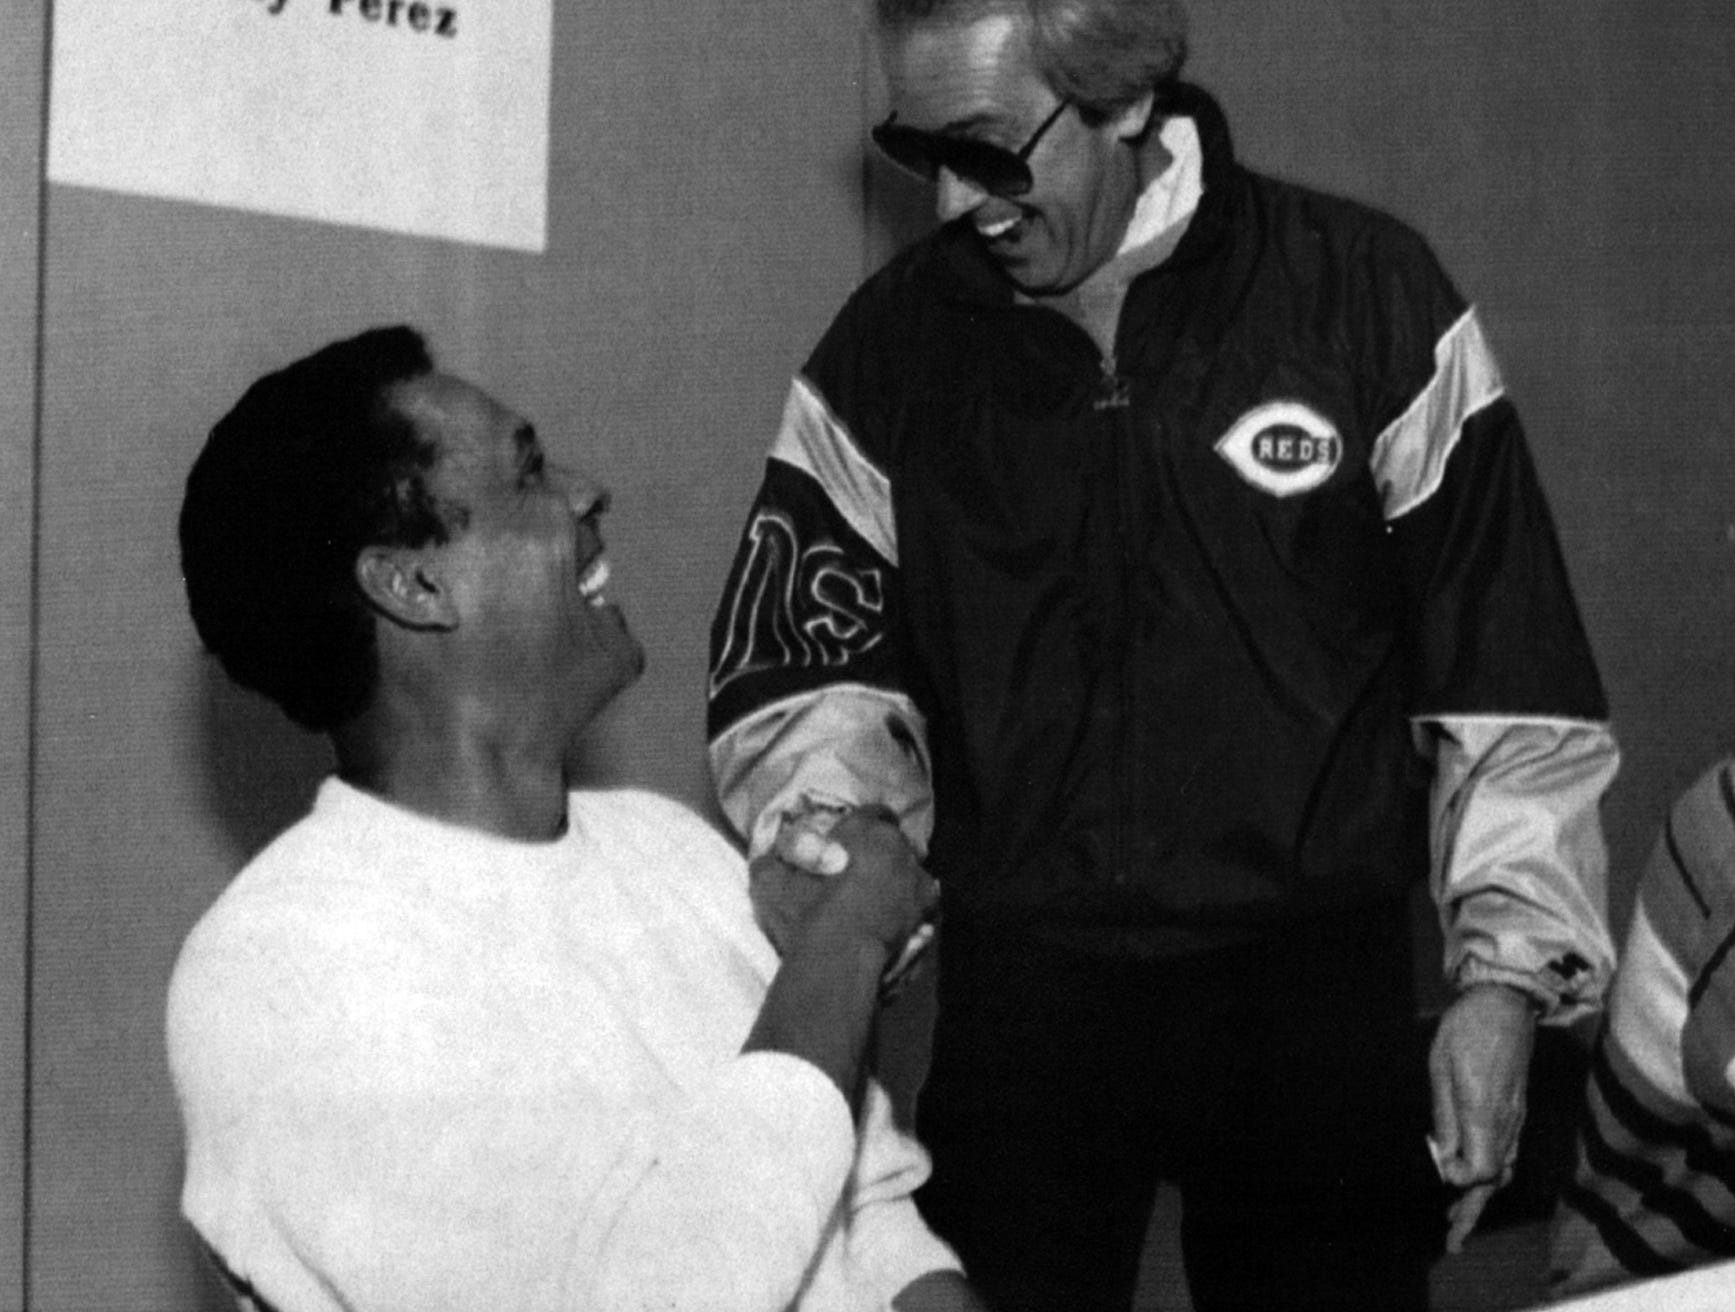 OCTOBER 31, 1992: New Reds' manager gets a warm greeting from Reds' announcer Marty Brennaman at a card trading show at the Convention Center Saturday. The Enquirer/Tony Jones